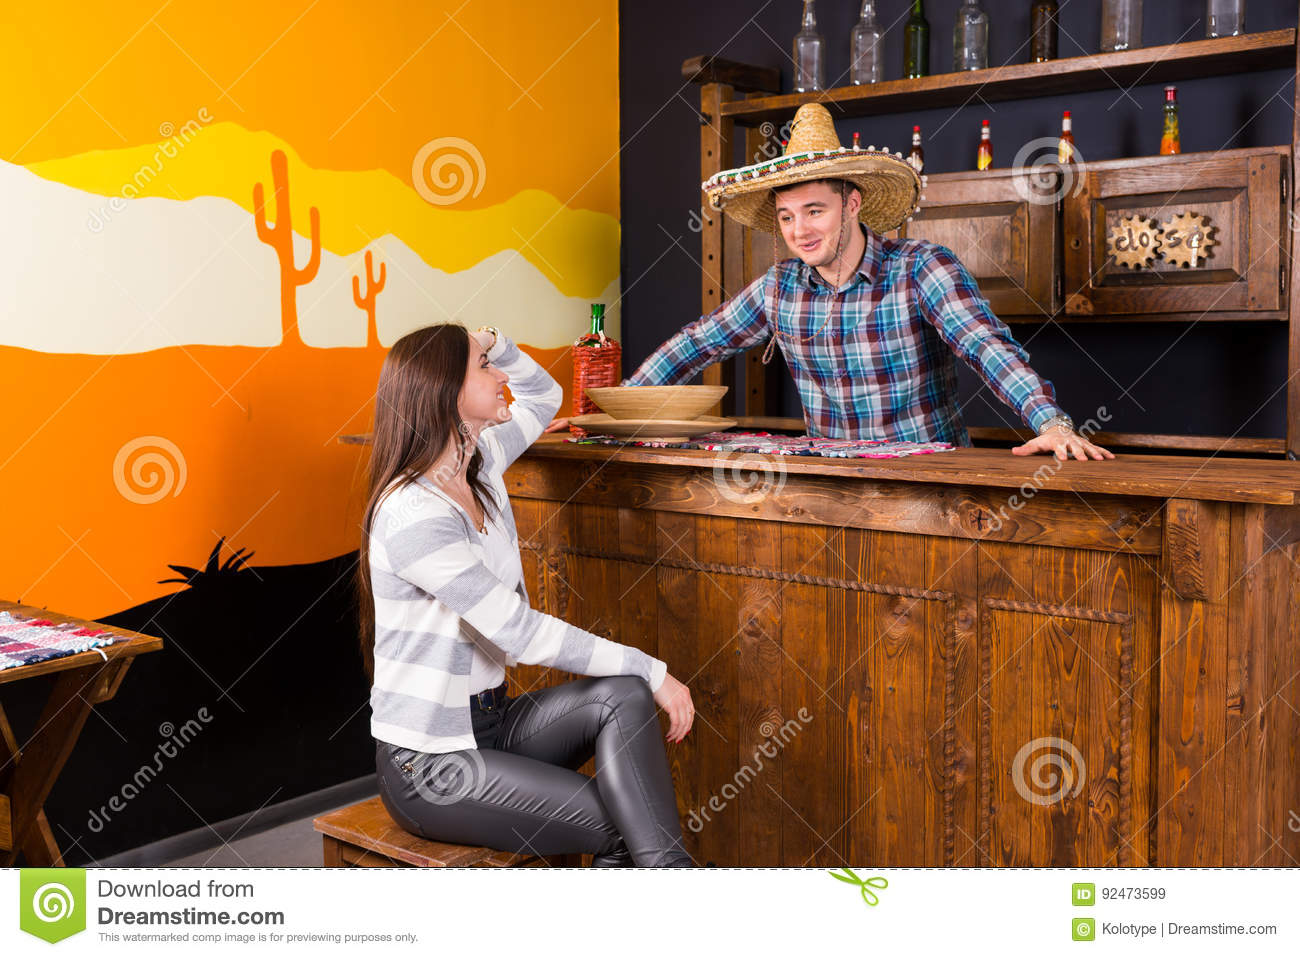 A Young Woman Sitting At The Bar Counter Next To The Bartender W